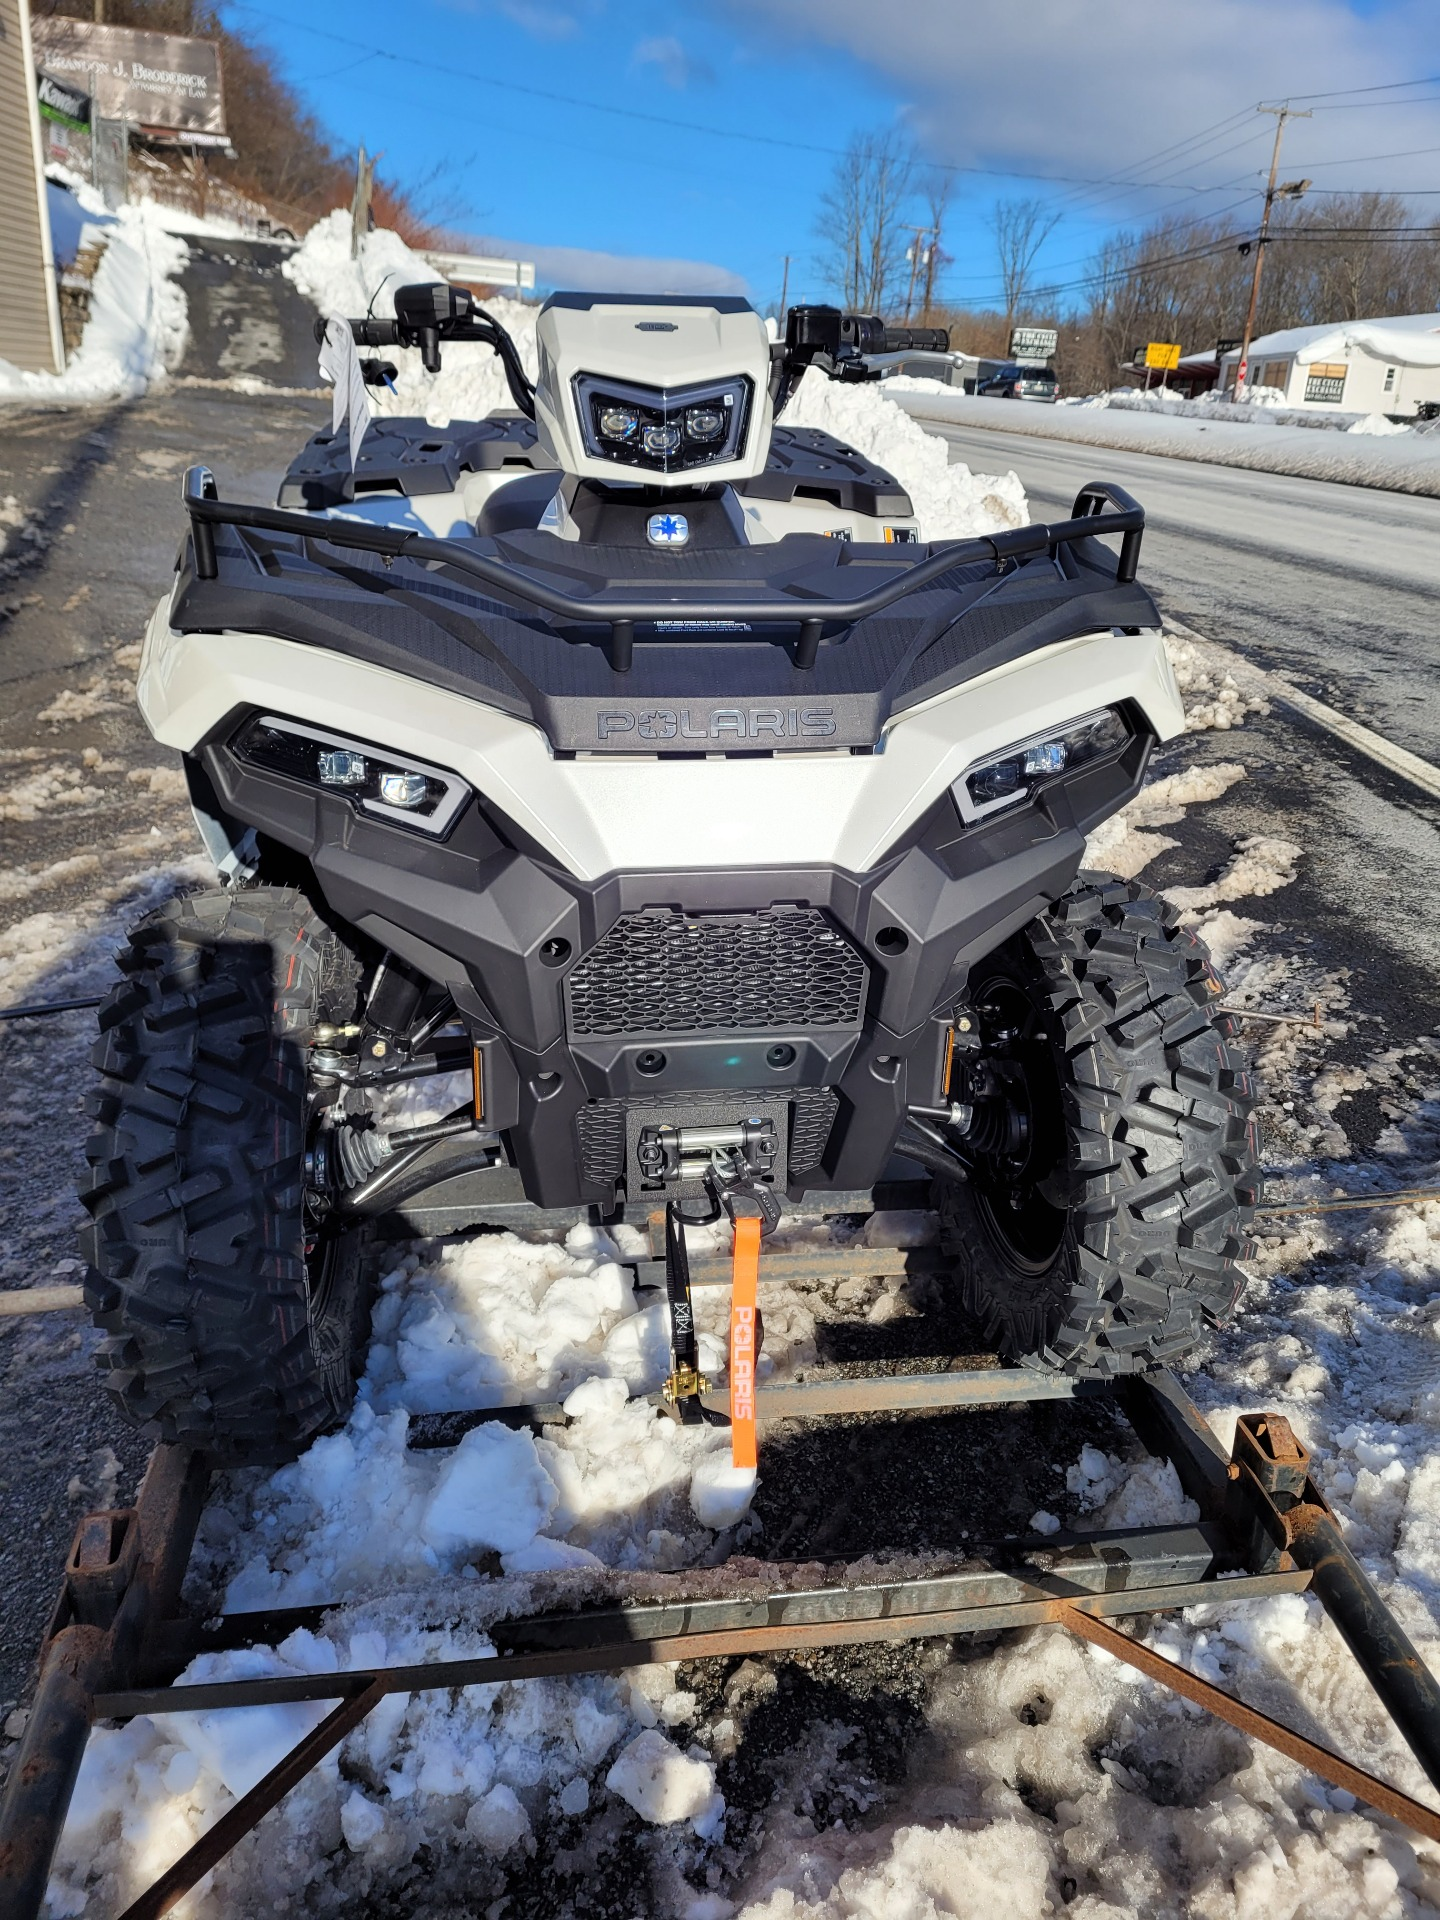 2021 Polaris Sportsman 570 Ultimate Trail Limited Edition in Ledgewood, New Jersey - Photo 3